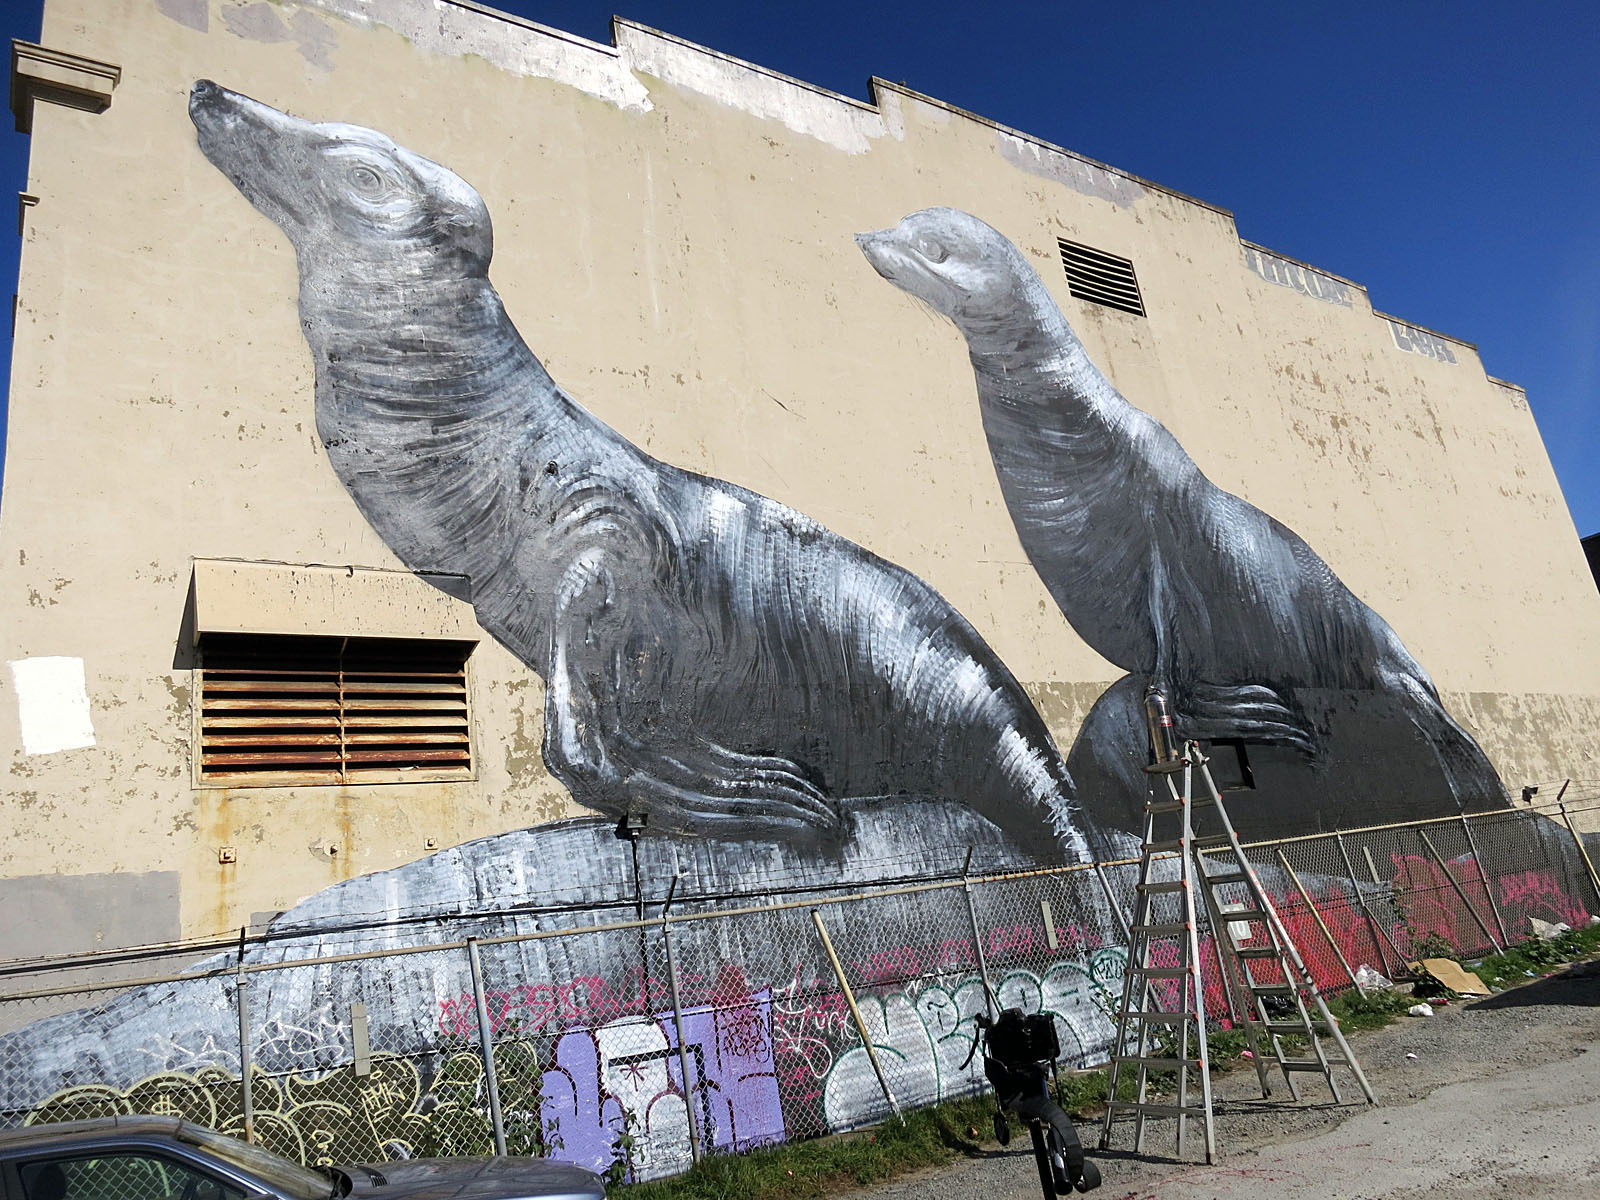 The Sea Lions On Bartlett Will Die Missionlocal